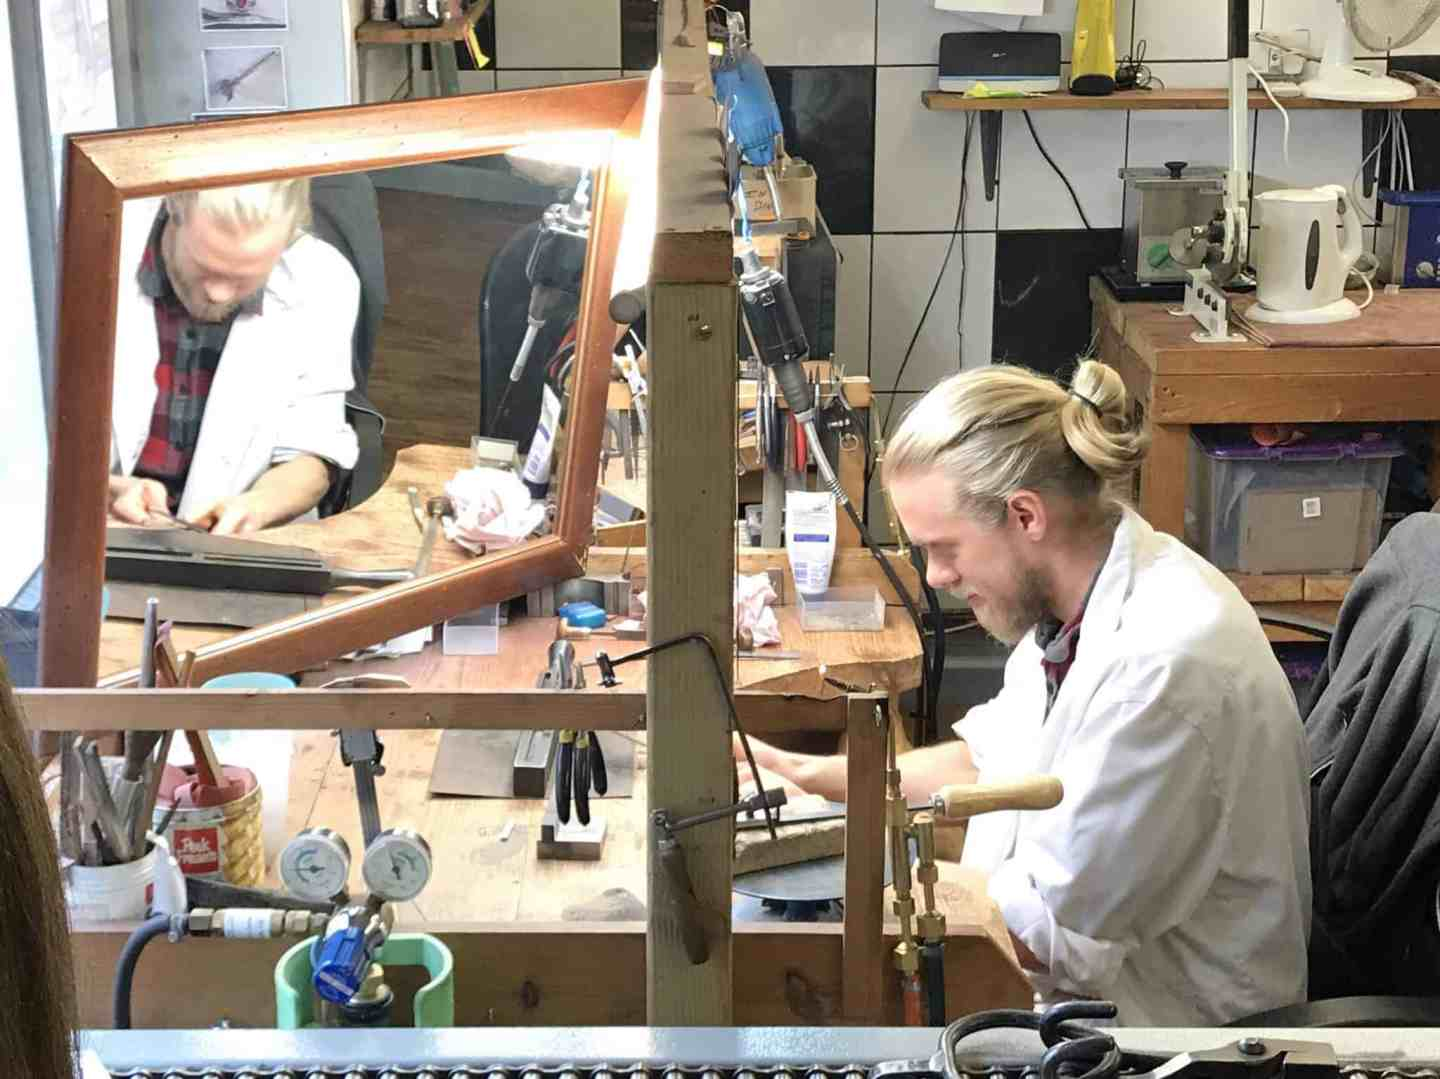 Paul demonstrating jewelley making at The Goldsmithy Goldsmiths